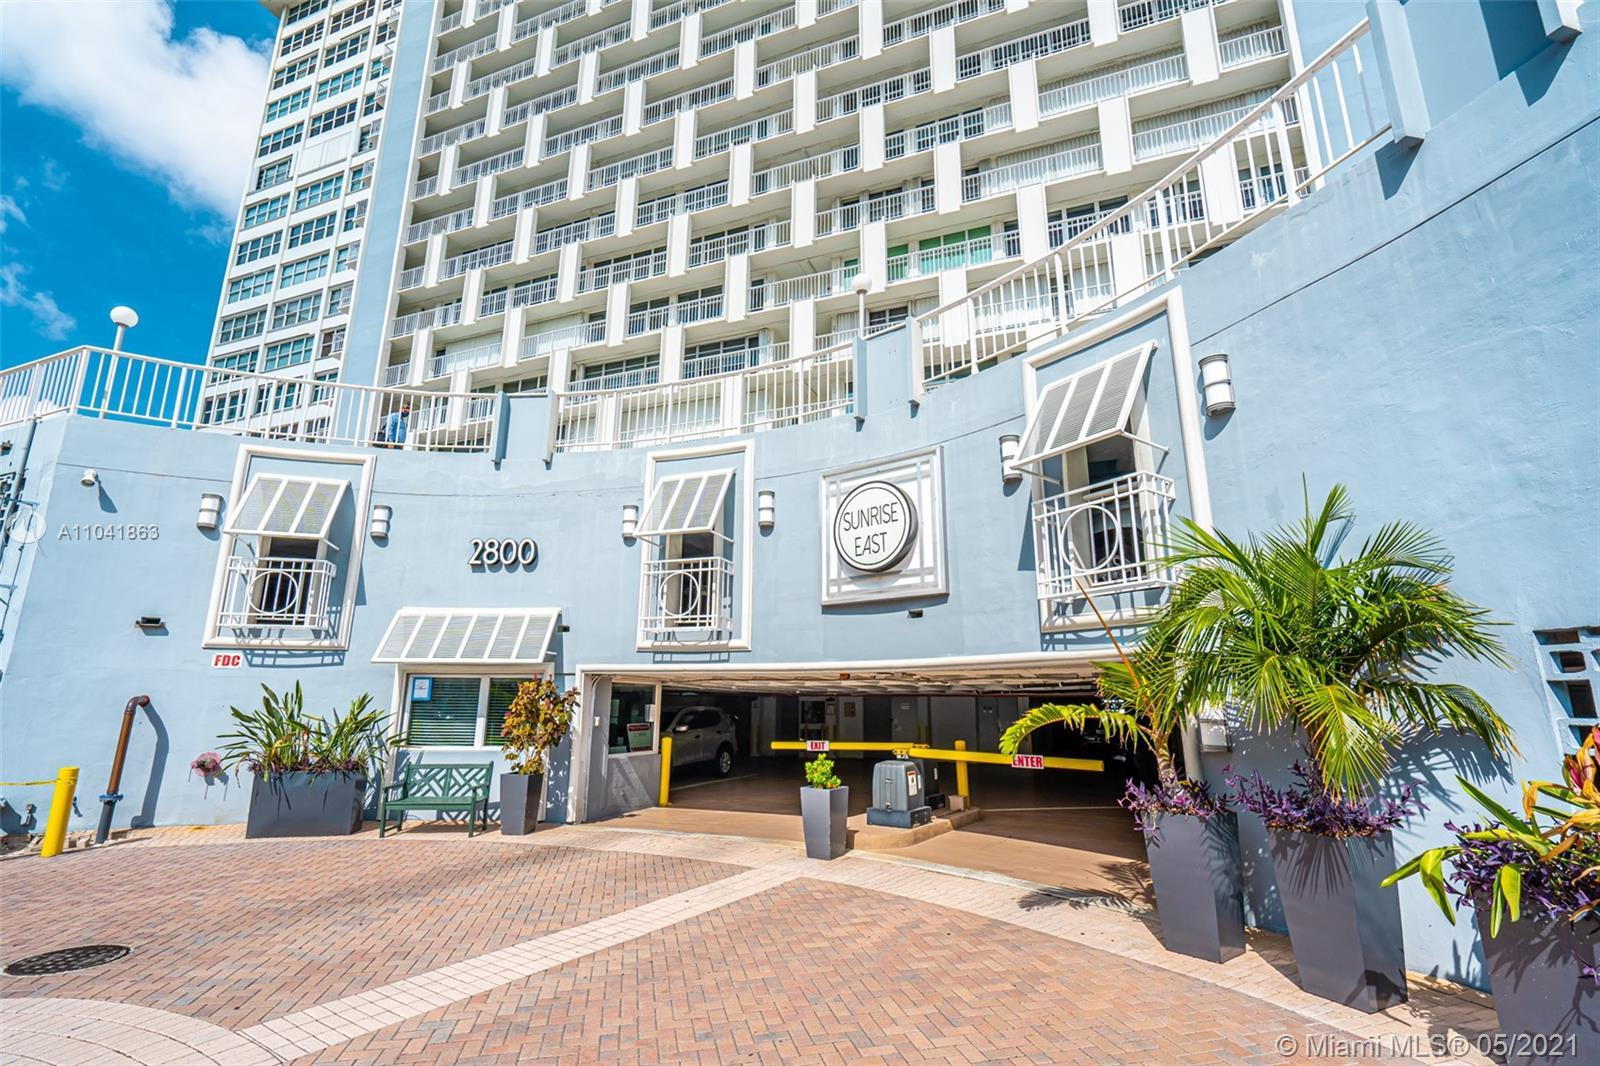 Opportunity! 16th Floor 2bedroom/2 bath Condo directly on the Inter-coastal Waterway with Ocean & Ci